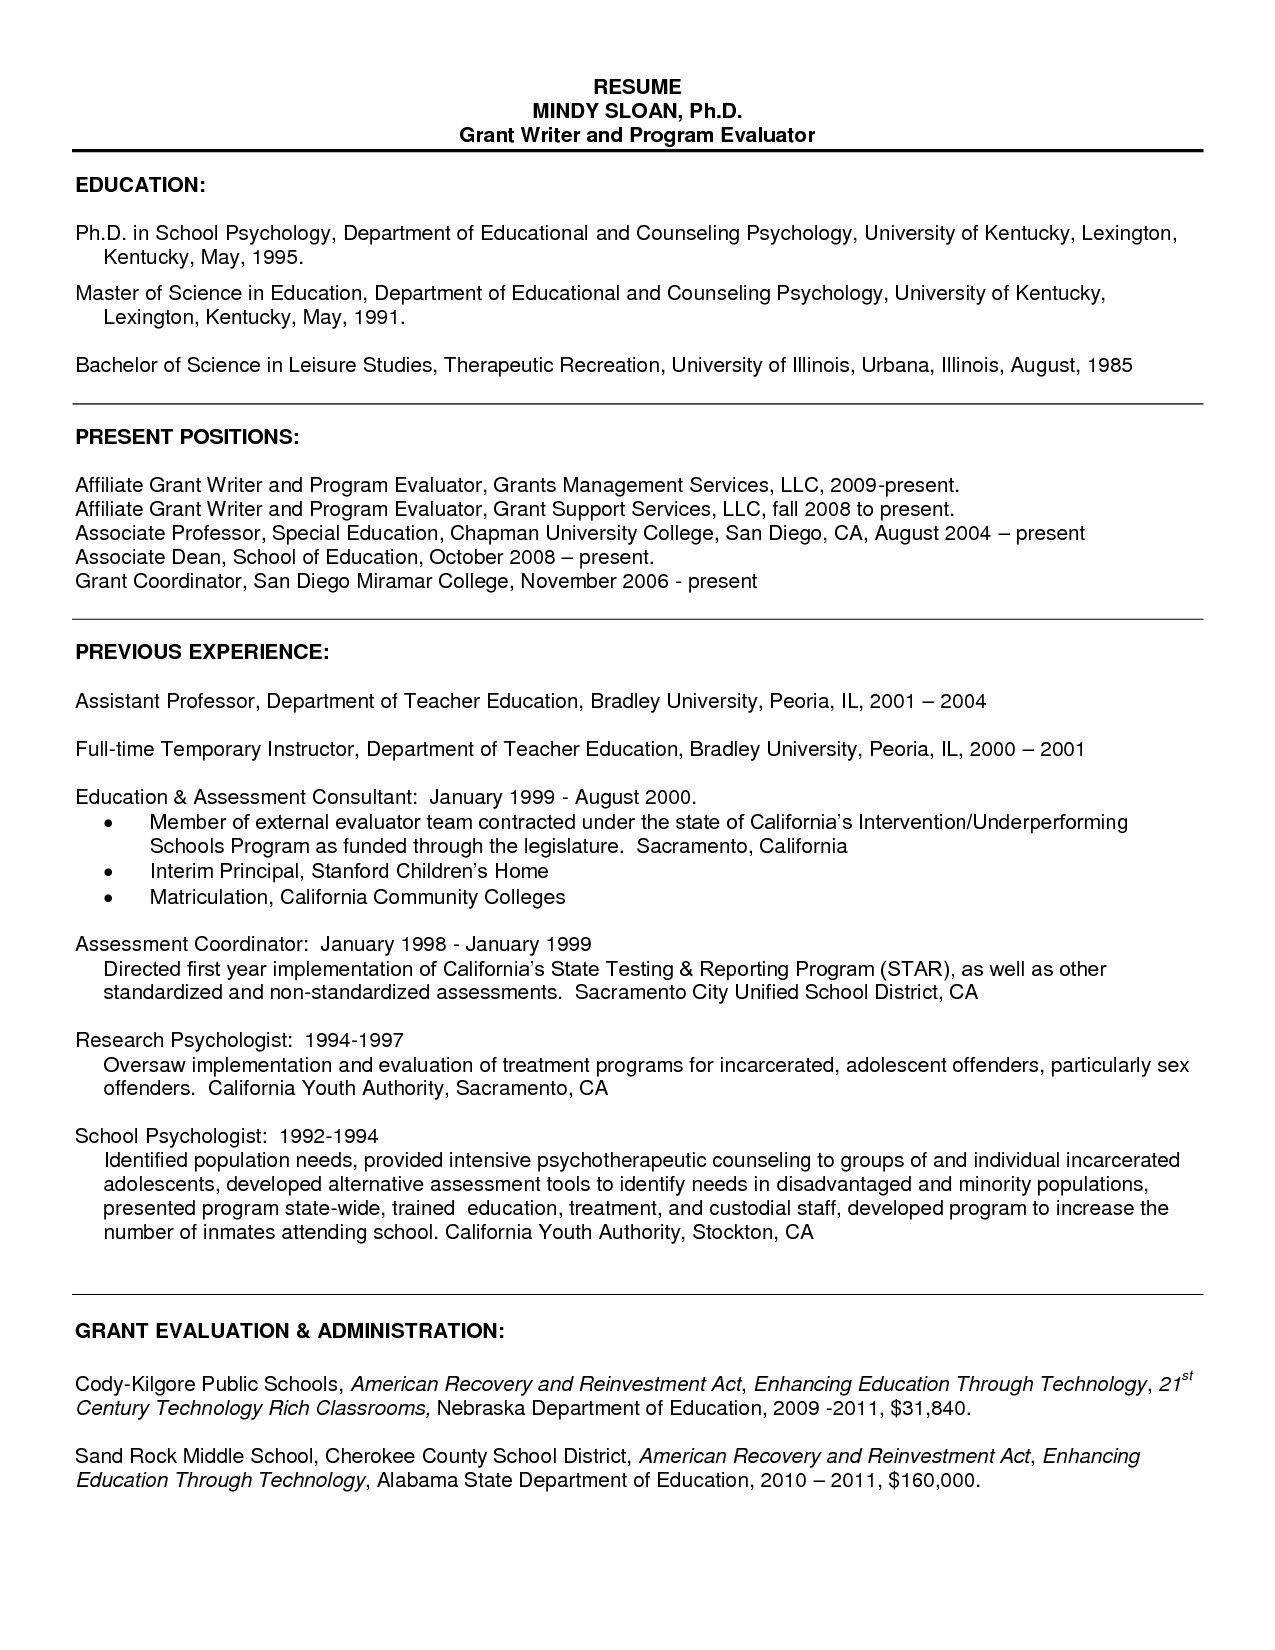 sample resume for psychology graduate    jobresumesample com  256  sample